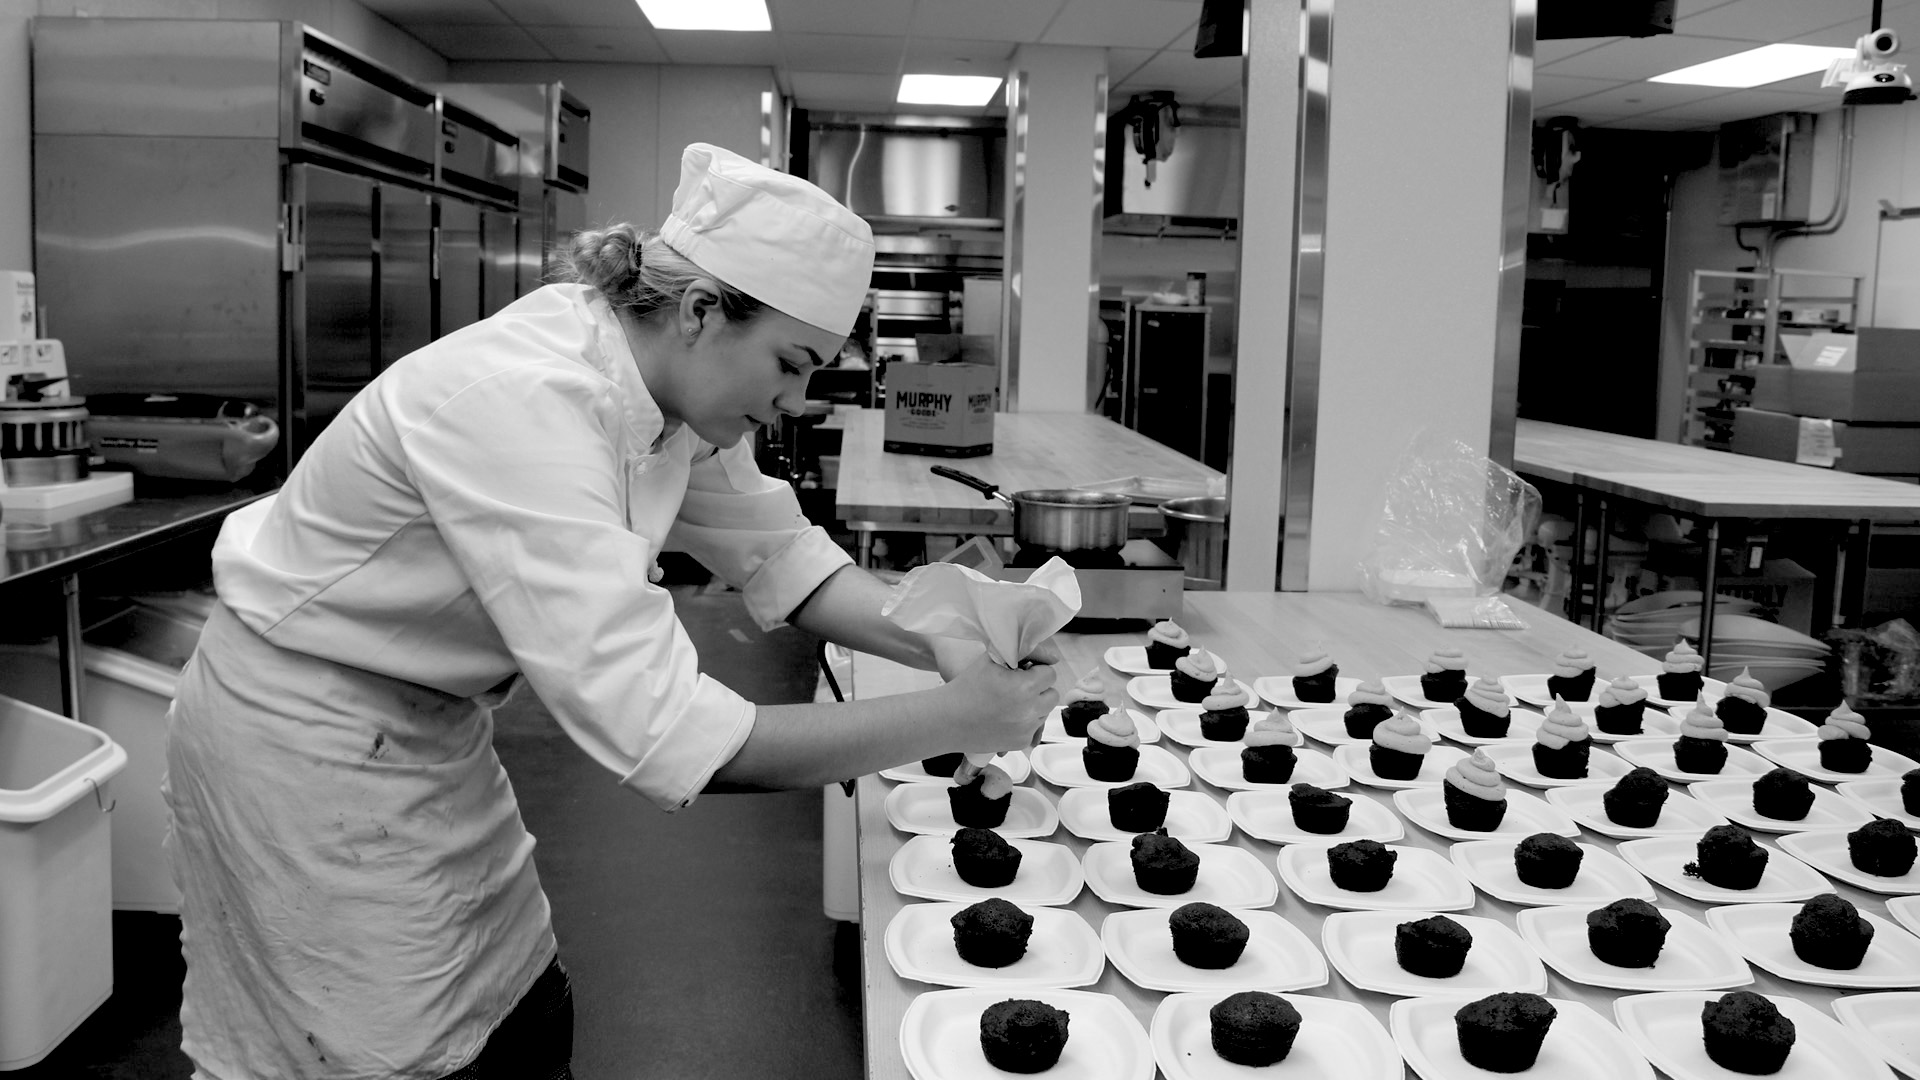 A culinary arts student frosts cupcakes at the new HCC MGM Culinary Arts Institute